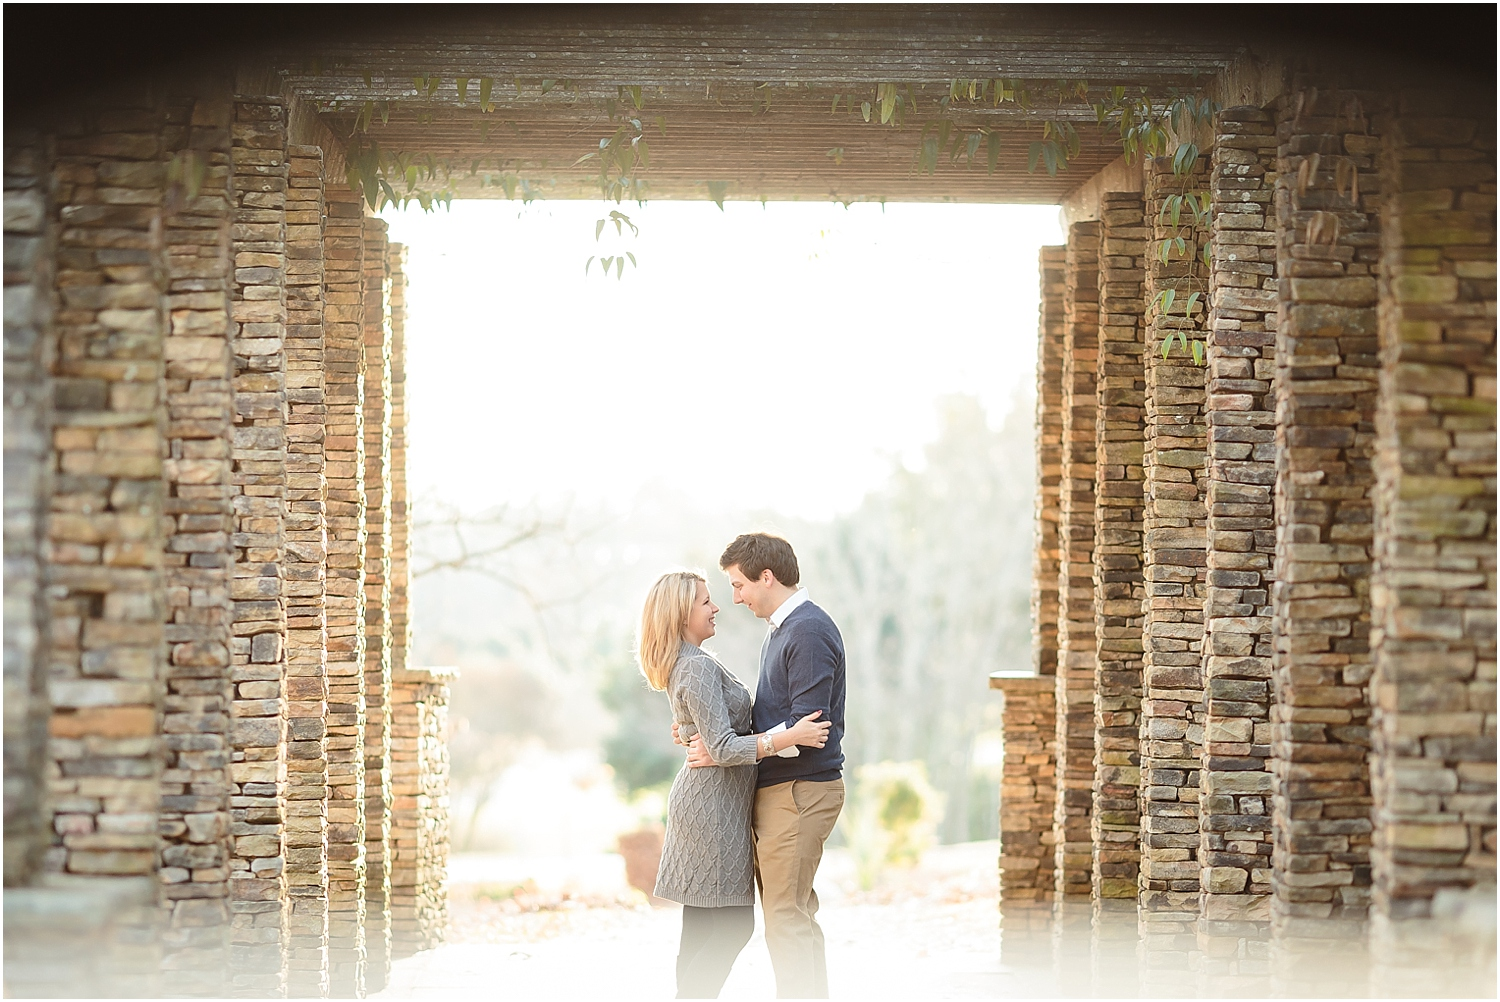 141207--0039clemson-engagement-shoot_blog.jpg